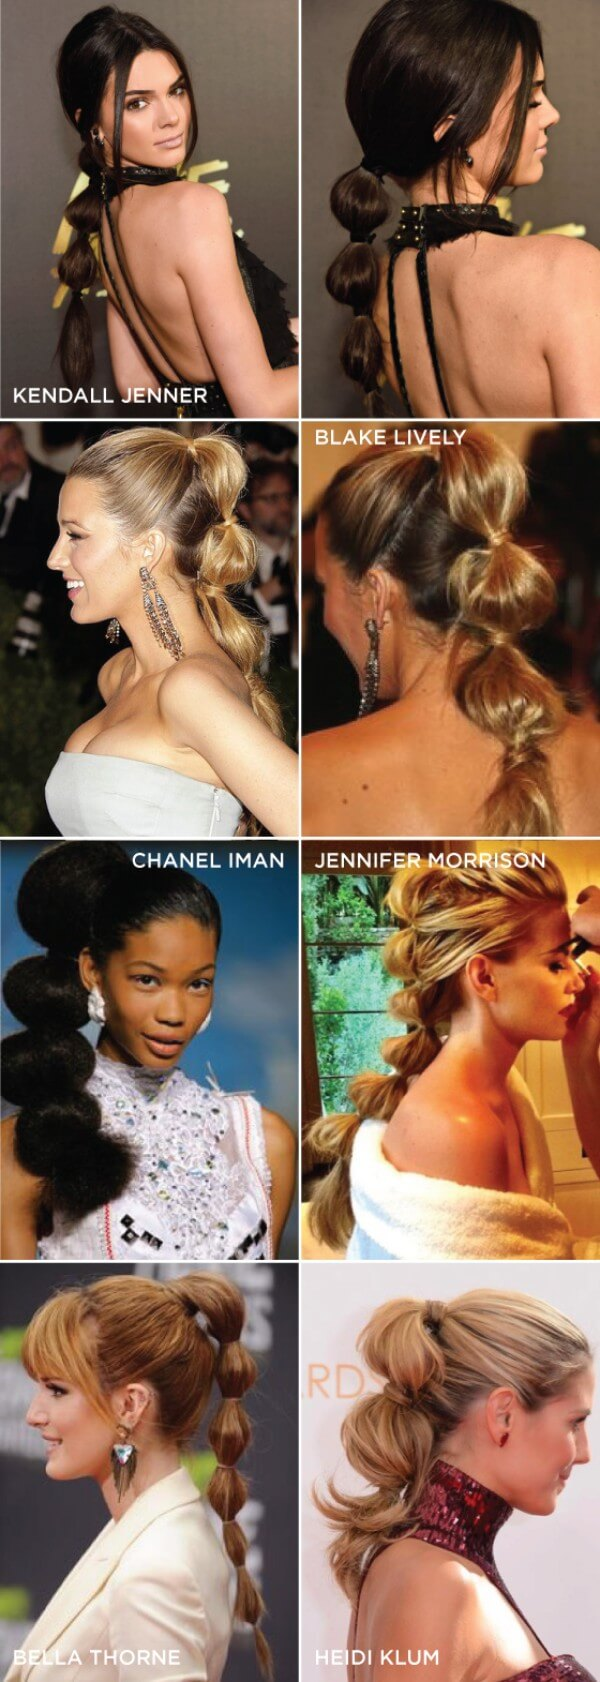 Kendall Jenner, Blake Lively, Chanel Iman, Jennifer Morrison, Heidi Klum & Bella Thorne, celebrity, long hair, met gala, Tried Ponytail Multiple Bands